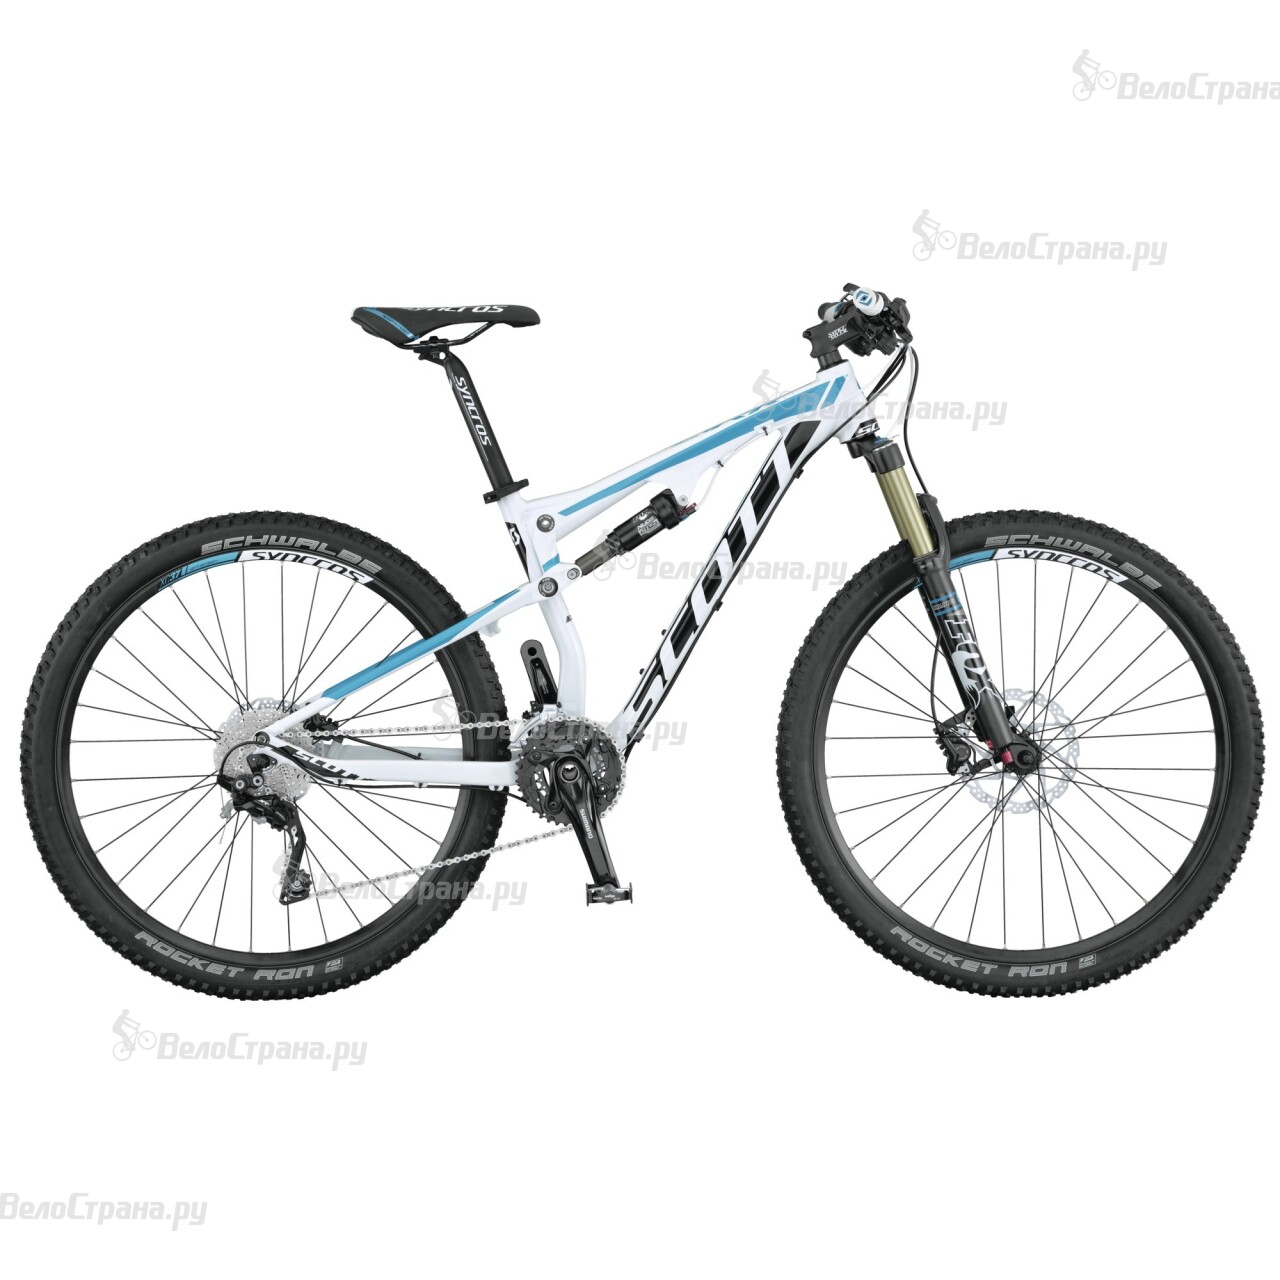 Велосипед Scott Contessa Spark 700 (2015)  велосипед scott contessa spark 700 rc 2016